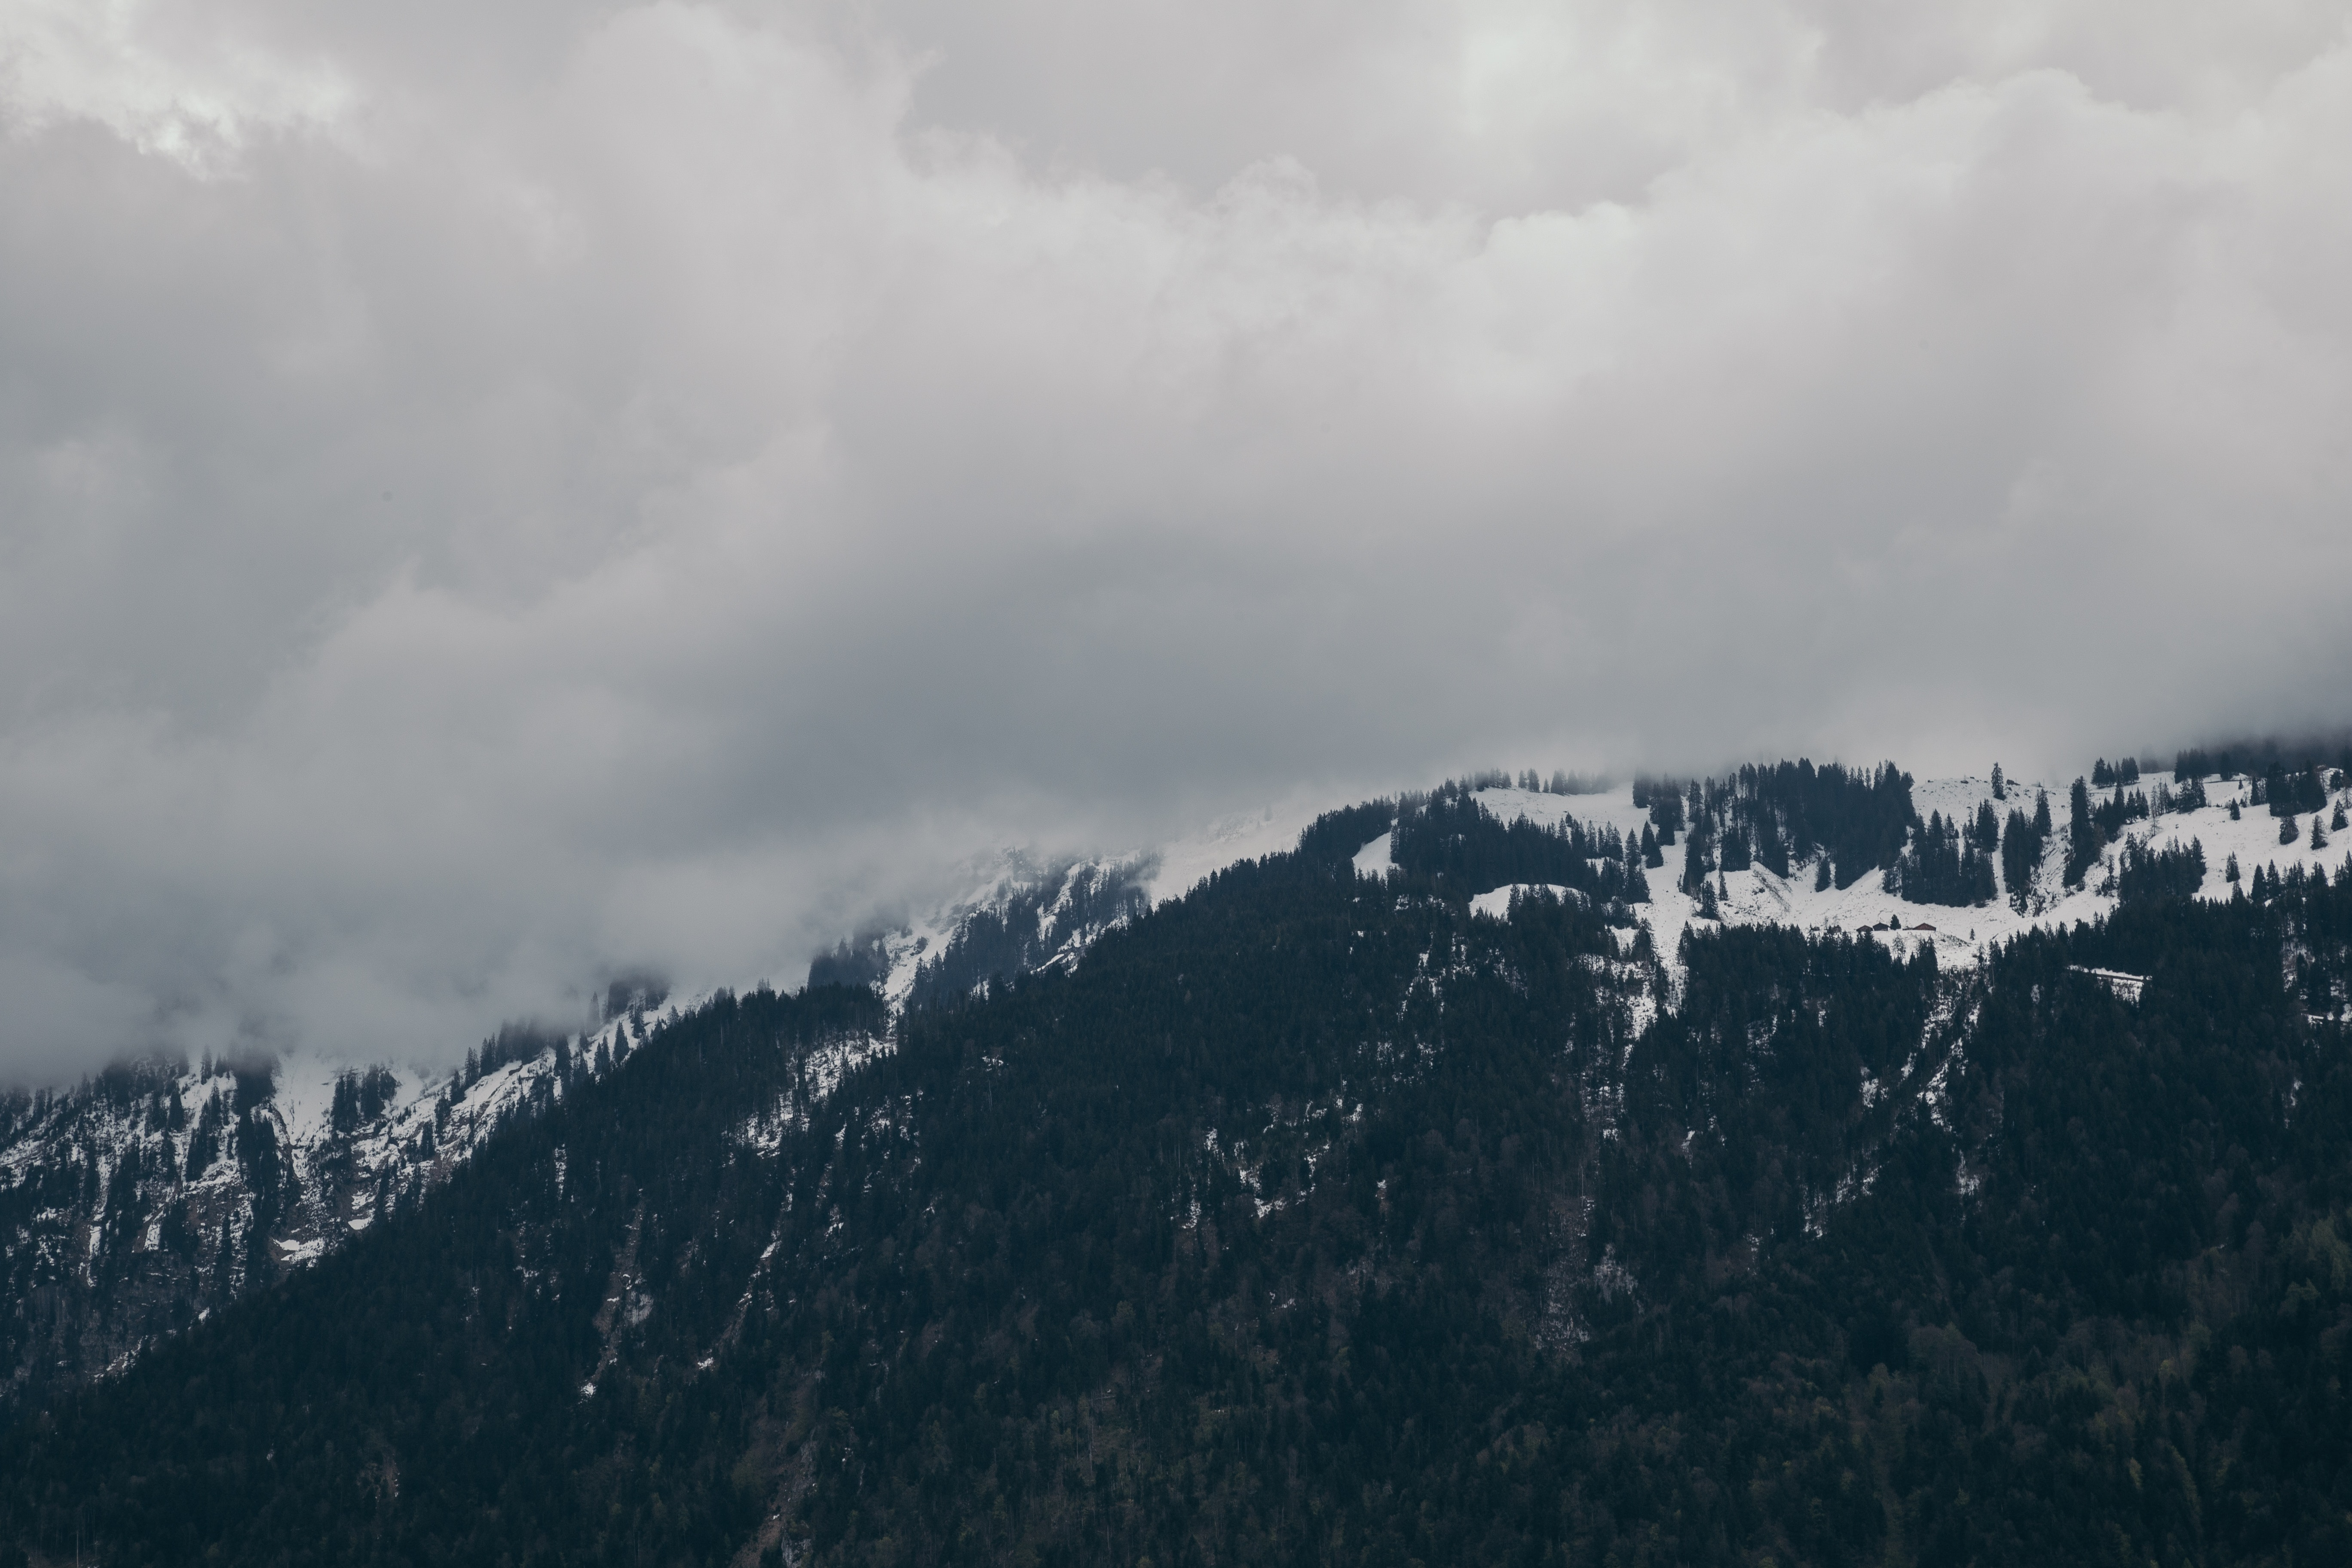 Snow-capped Mountain Under Cloudy Sky, Nature, Winter, Trees, Travel, HQ Photo